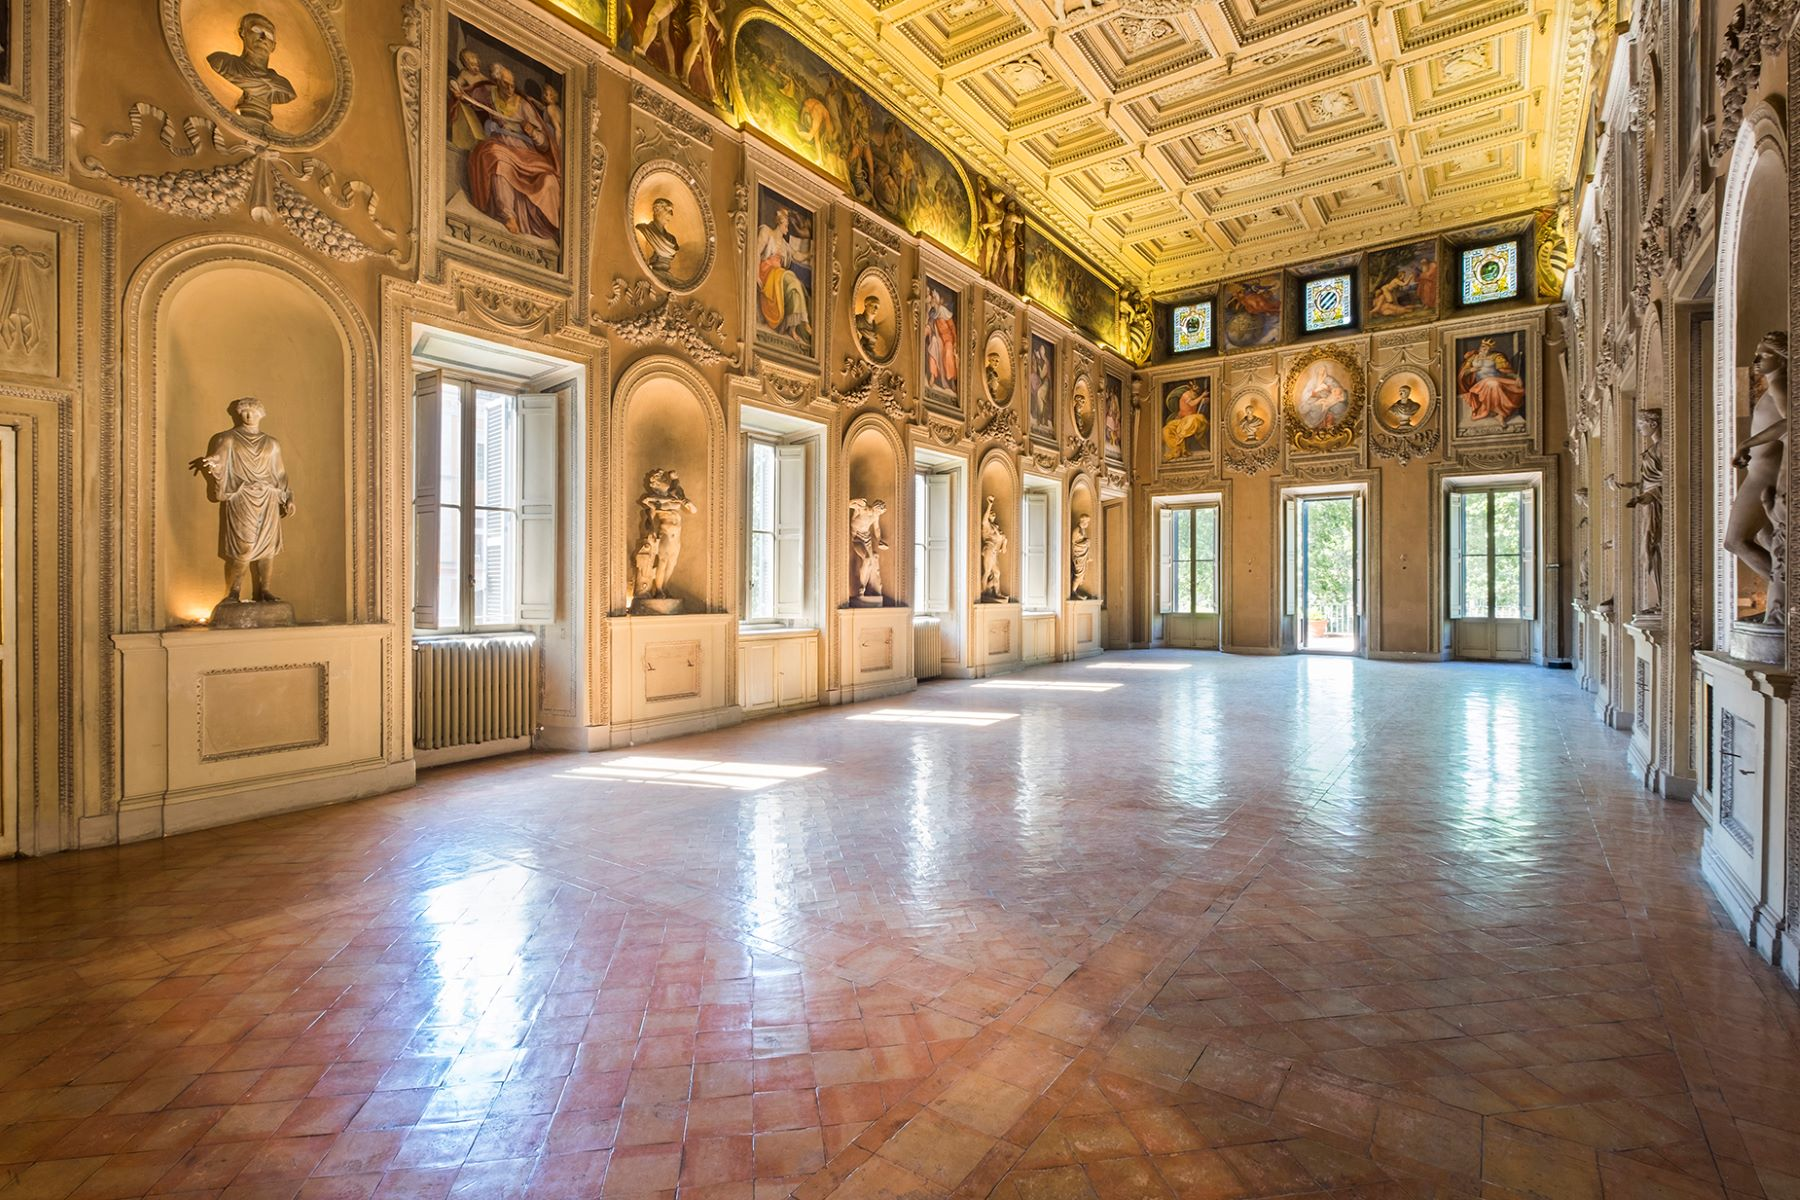 Property 为 销售 在 Palazzo Sacchetti, a pearl of the late reinassance in the heart of Rome 罗马, 罗马 意大利